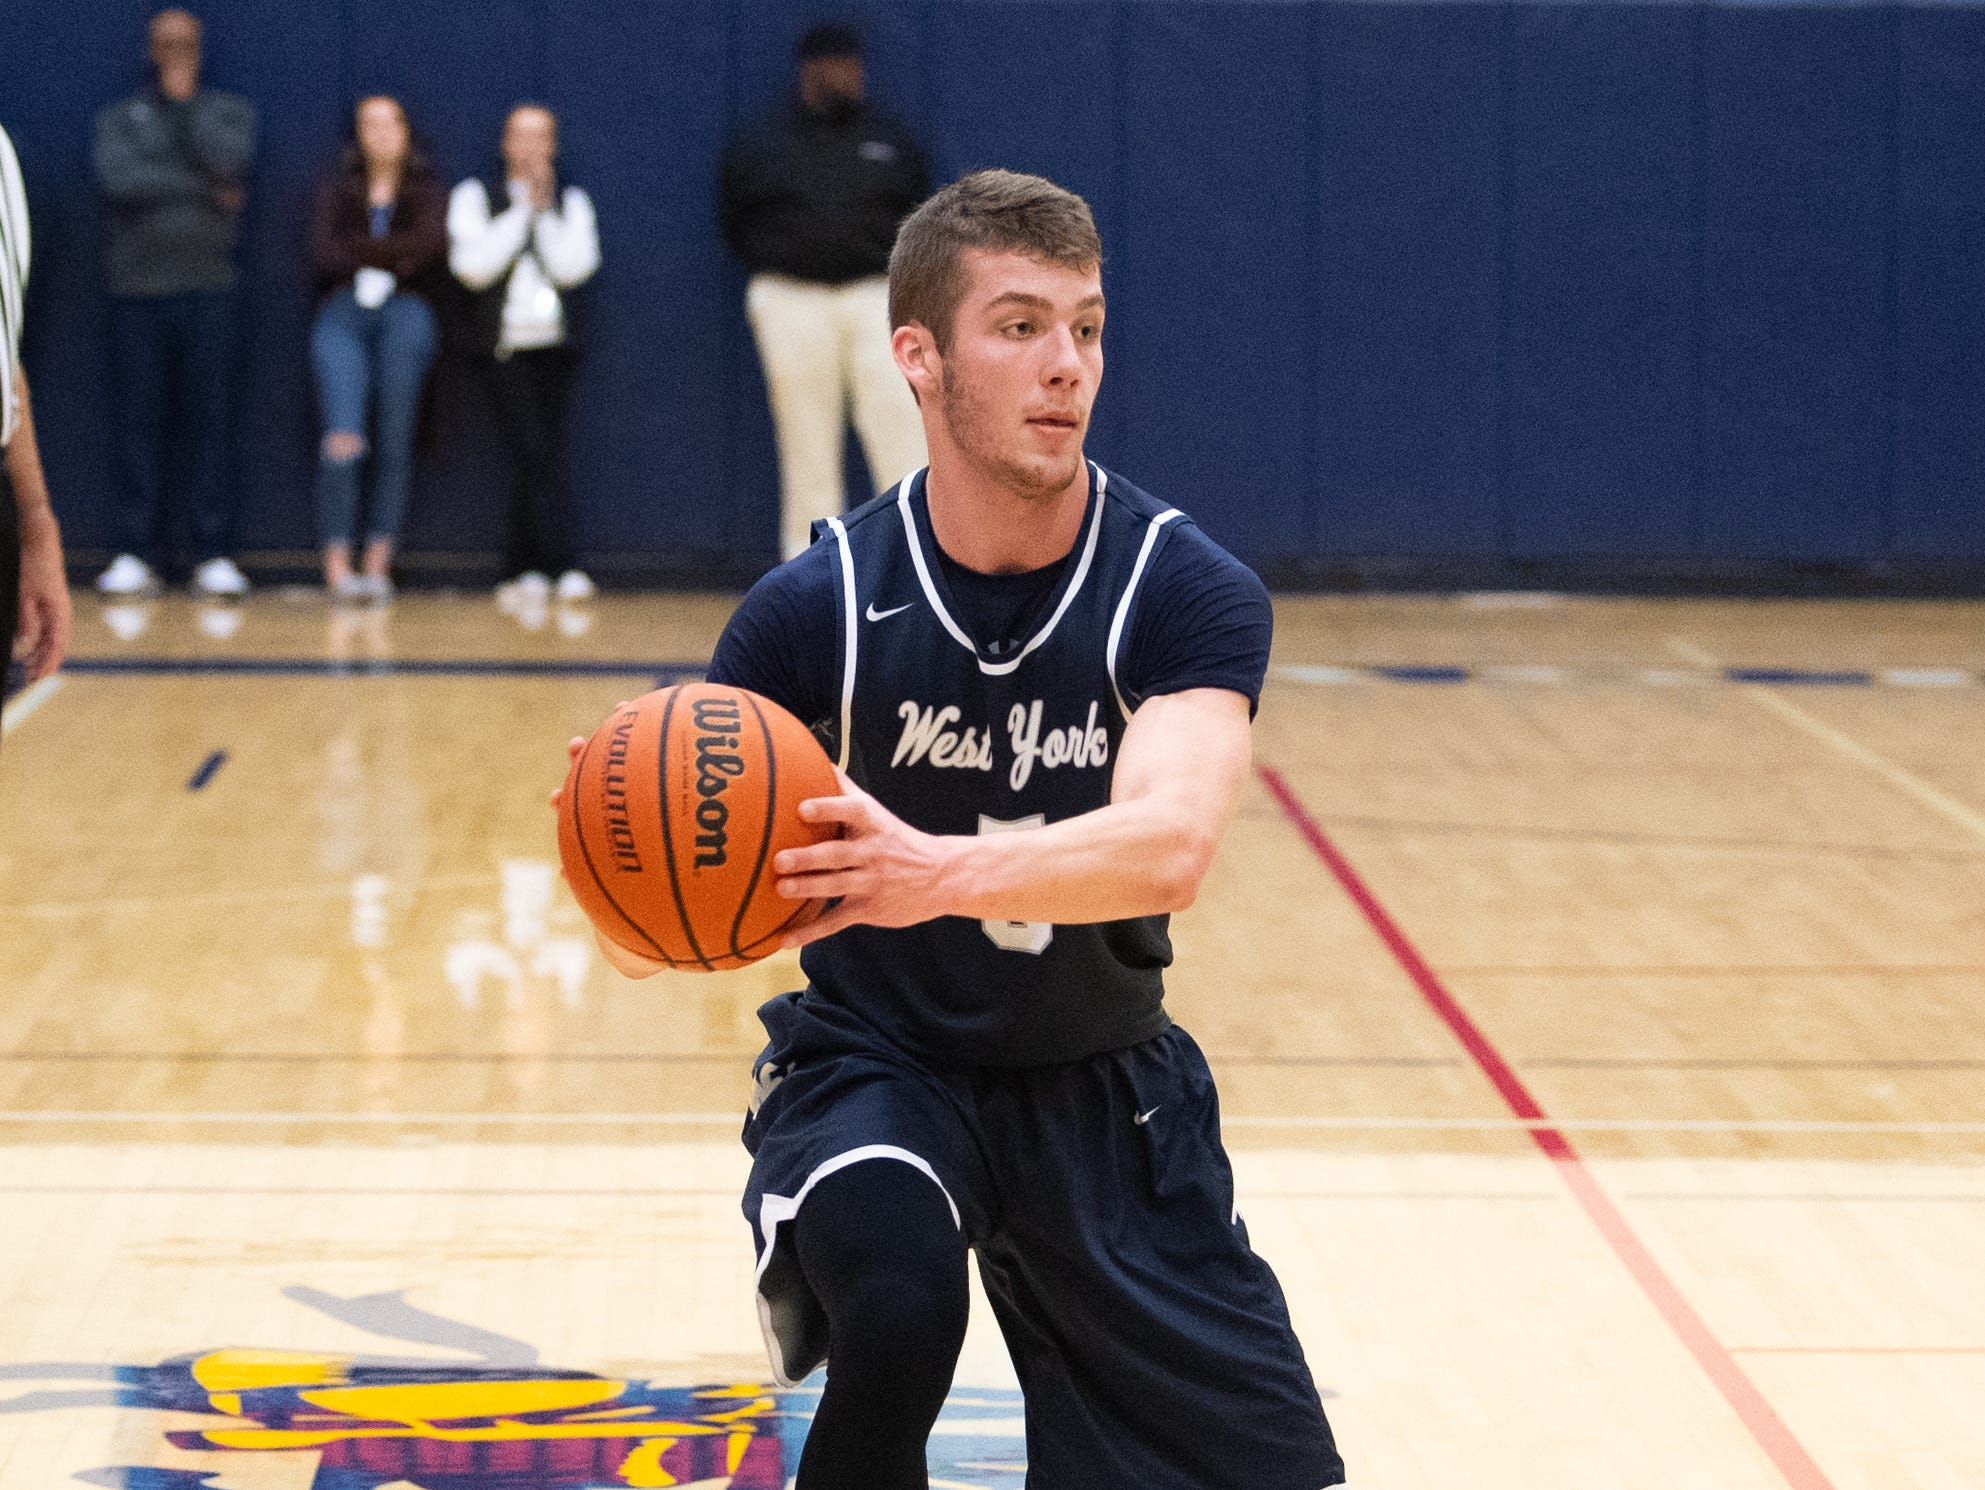 Andrew LaManna (5) prepares to pass during the YAIAA boys' basketball game between Eastern York and West York, Friday, January 25, 2019. The Golden Knights defeated the Bulldogs 59 to 55.